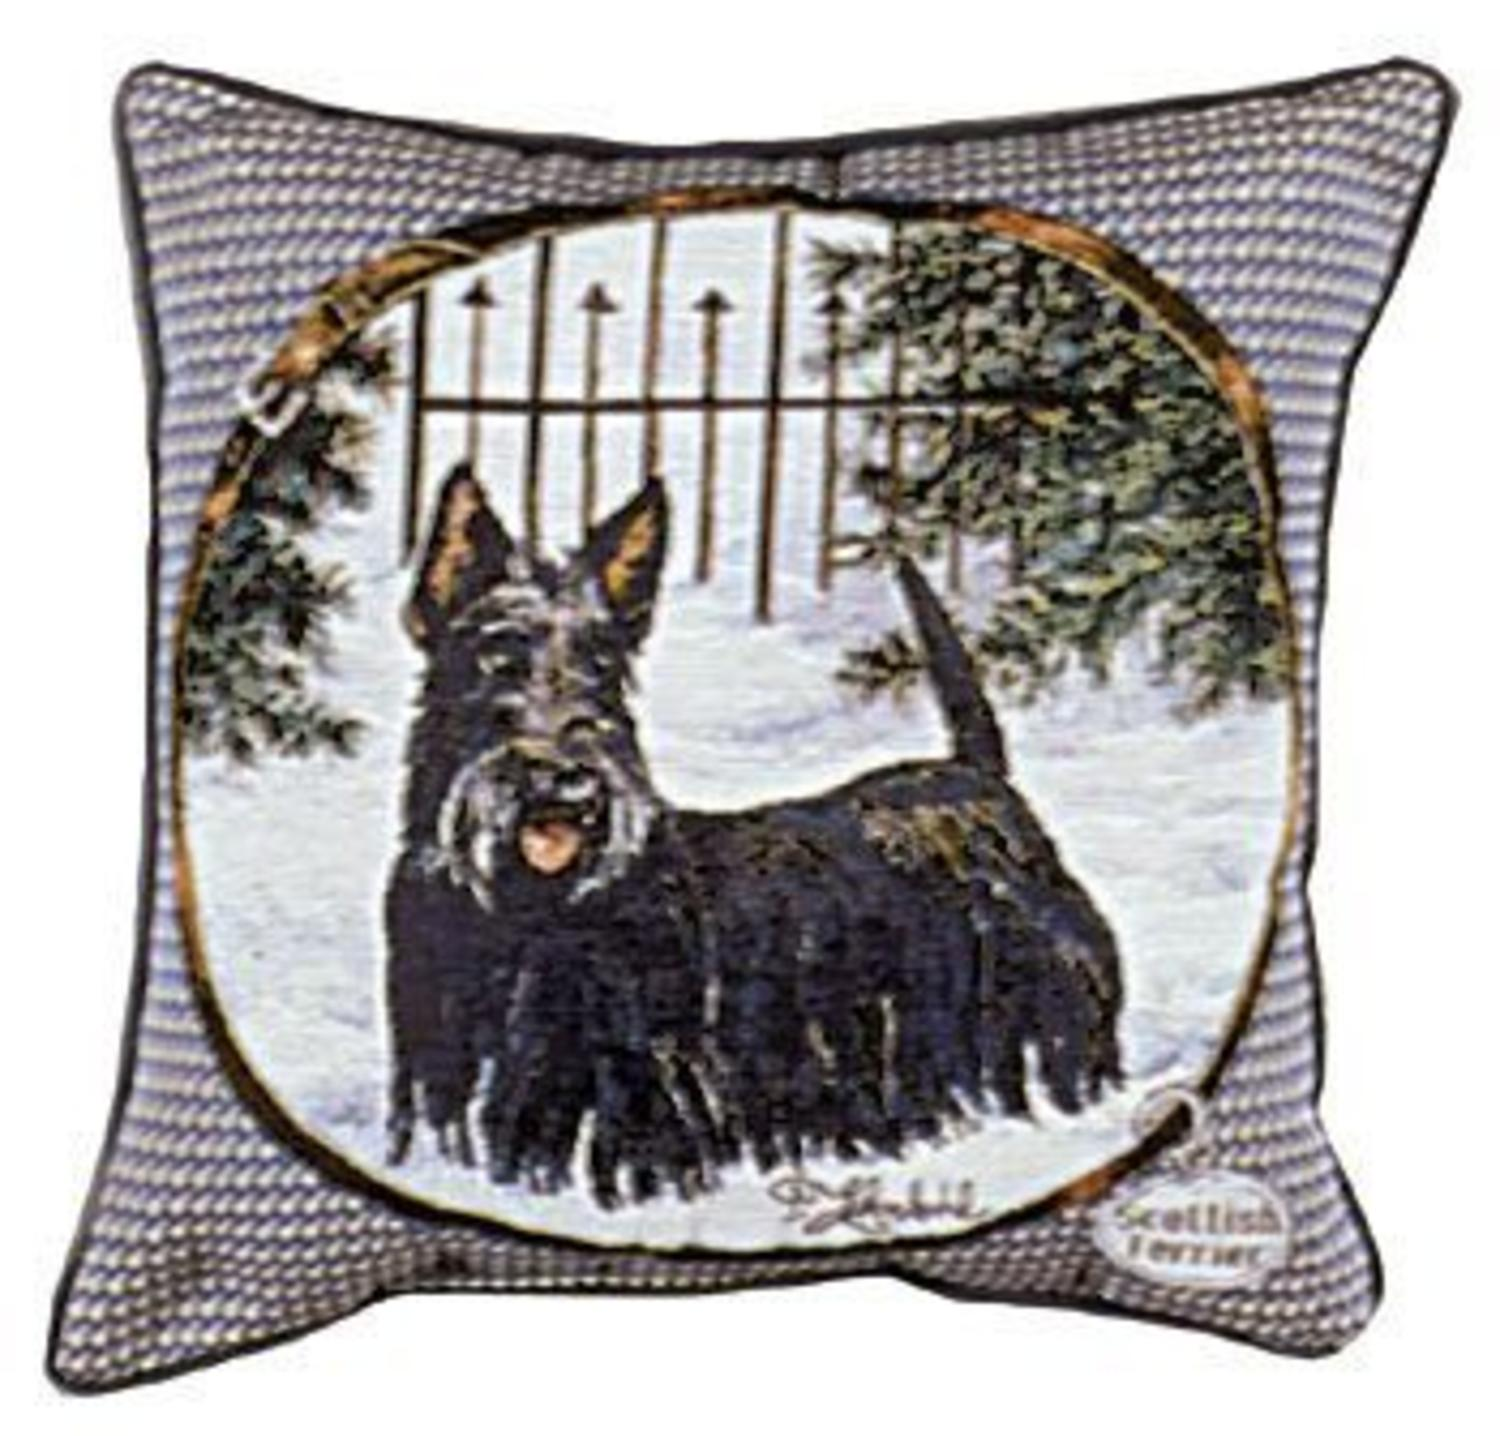 "Scottish Terrier Dog Animal Decorative Throw Pillow 17"" x 17"""